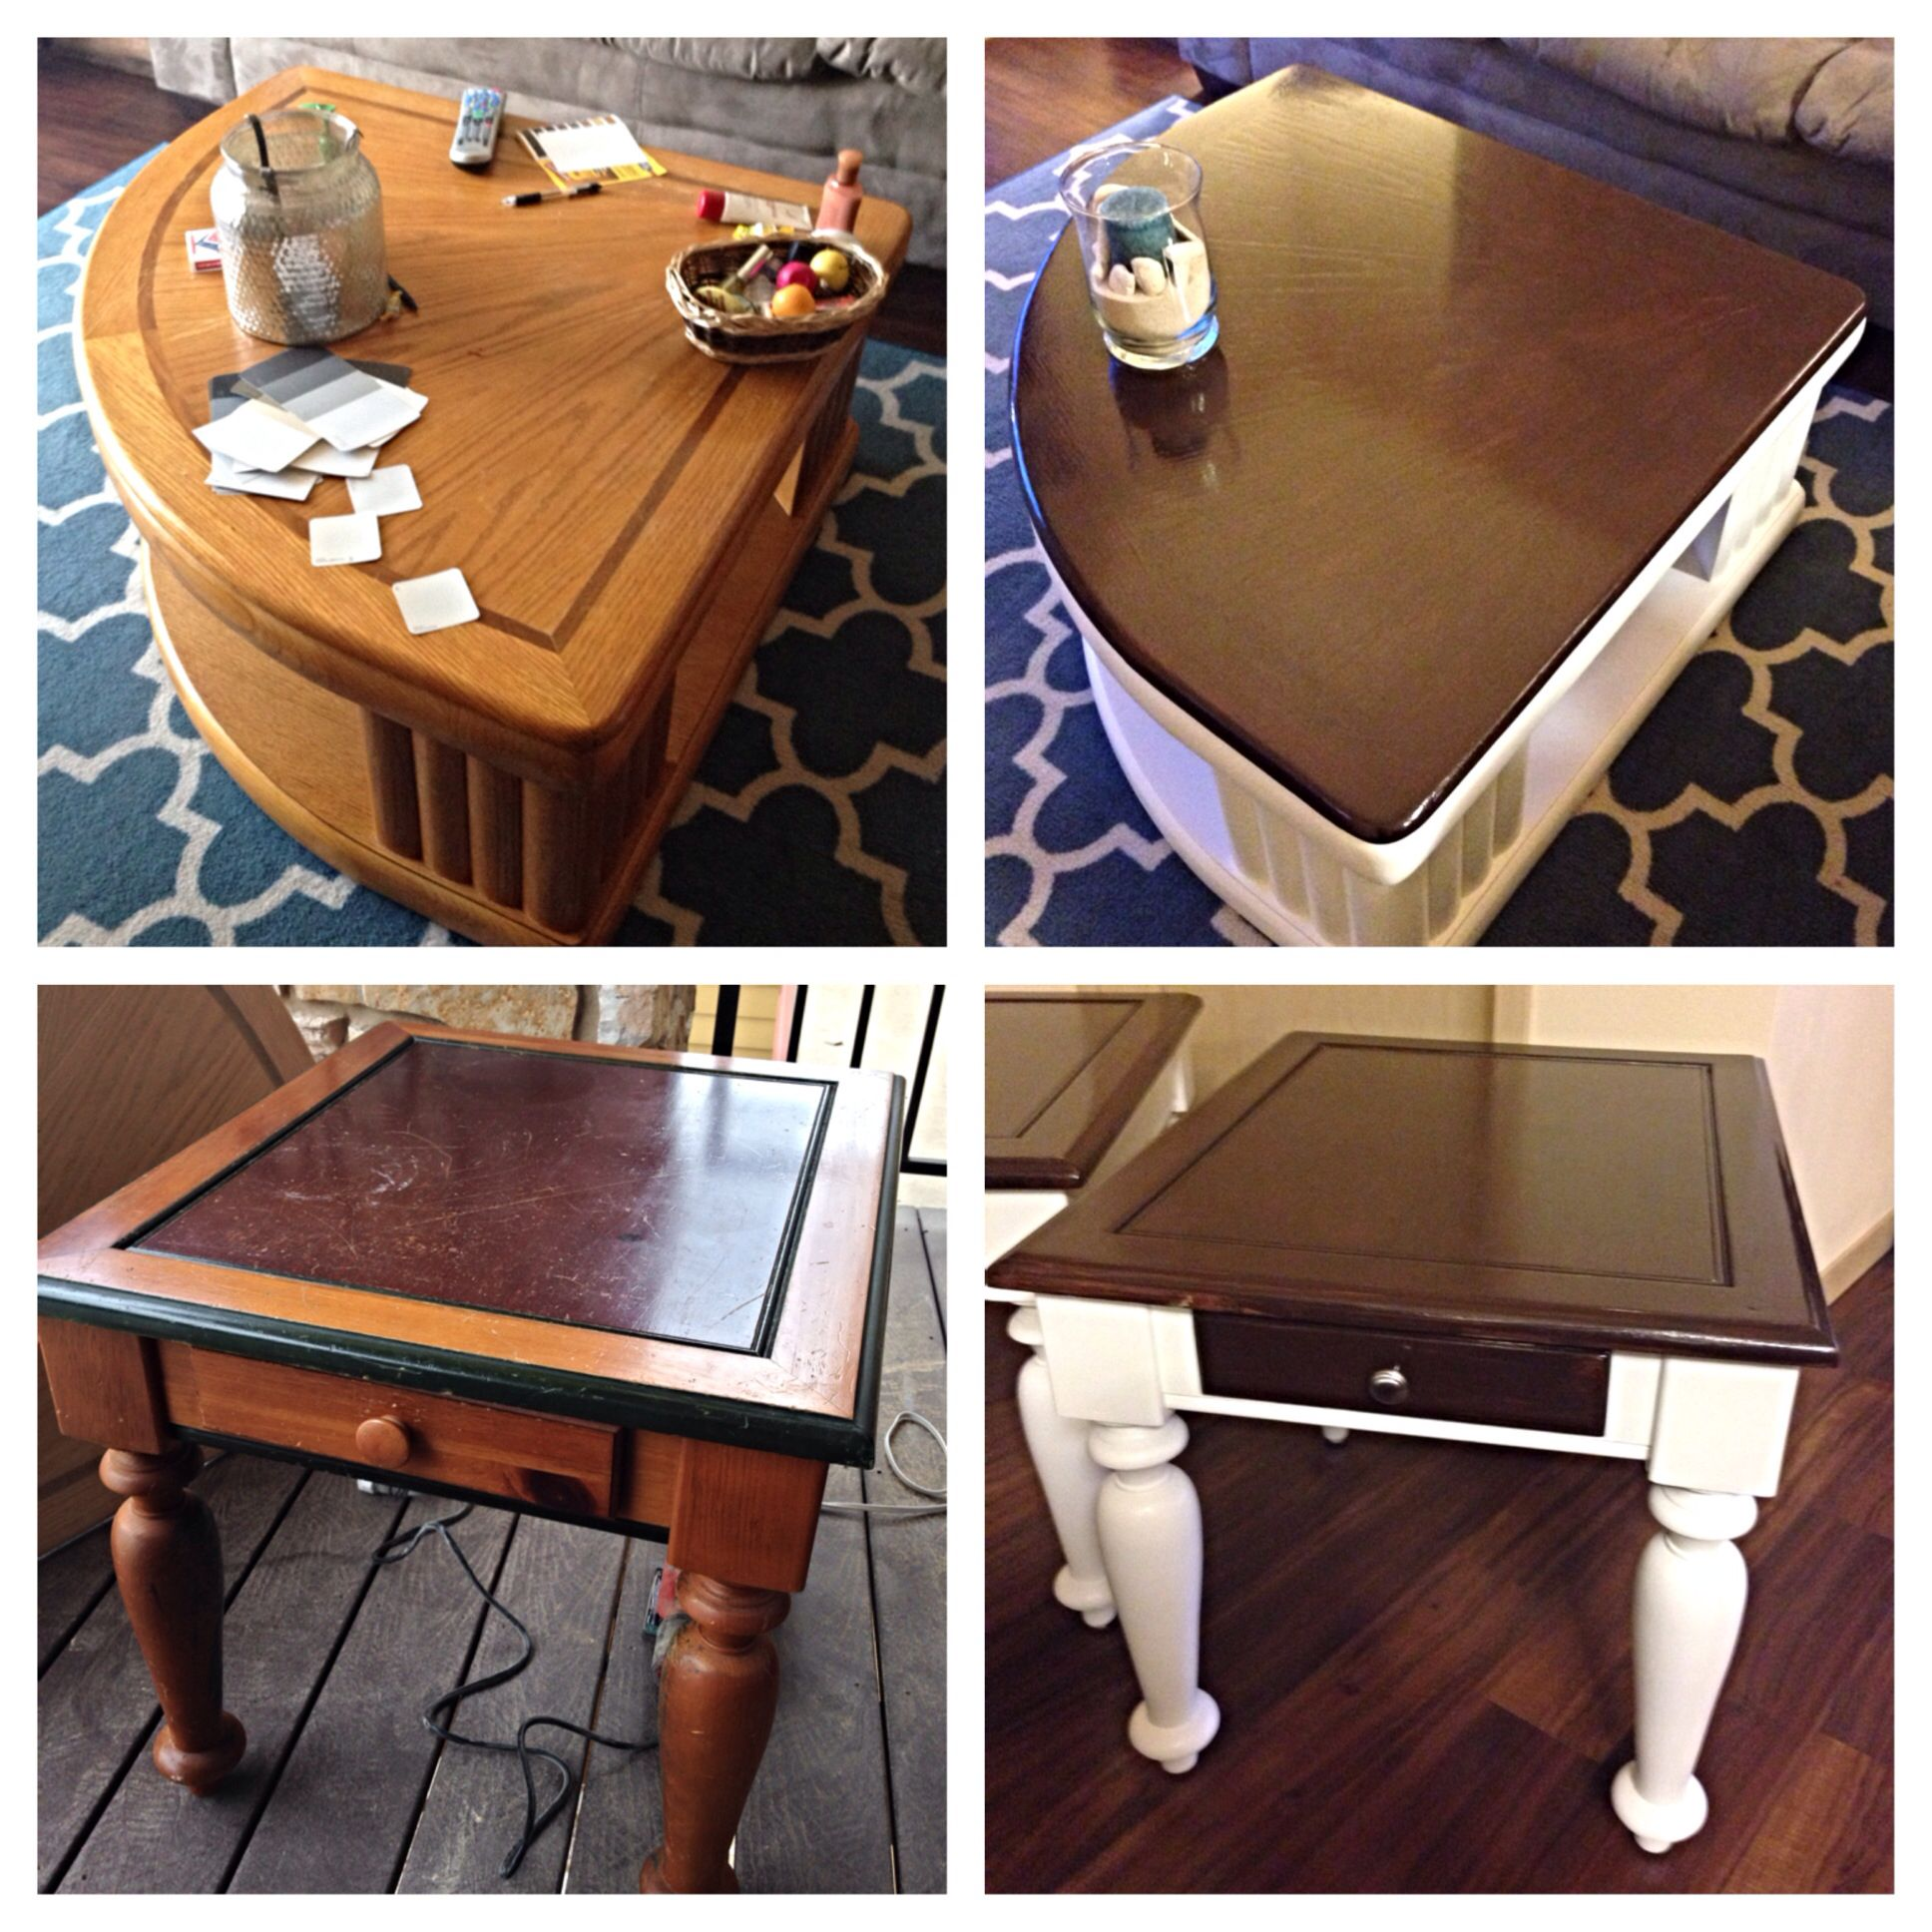 Before After Coffee Table End Tables Refinishing Painted White With A Dark Walnut Stain On Top Painted End Tables Painted Coffee Tables Coffee Table Redo